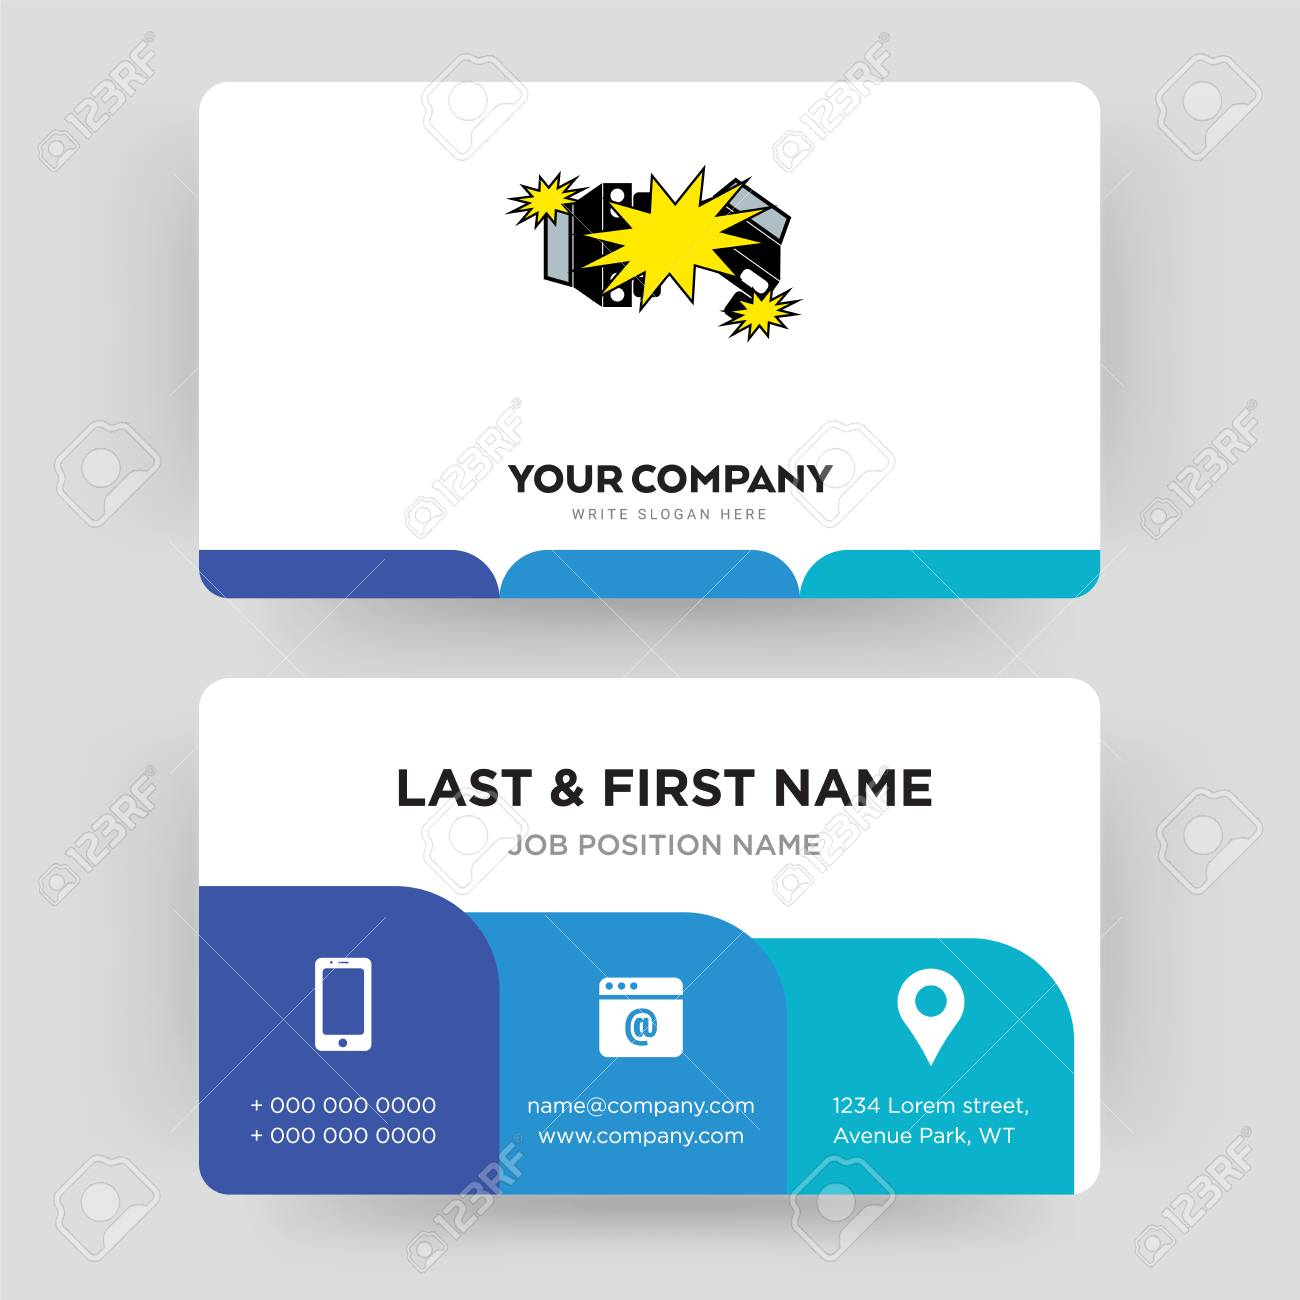 car crash business card design template visiting for your company